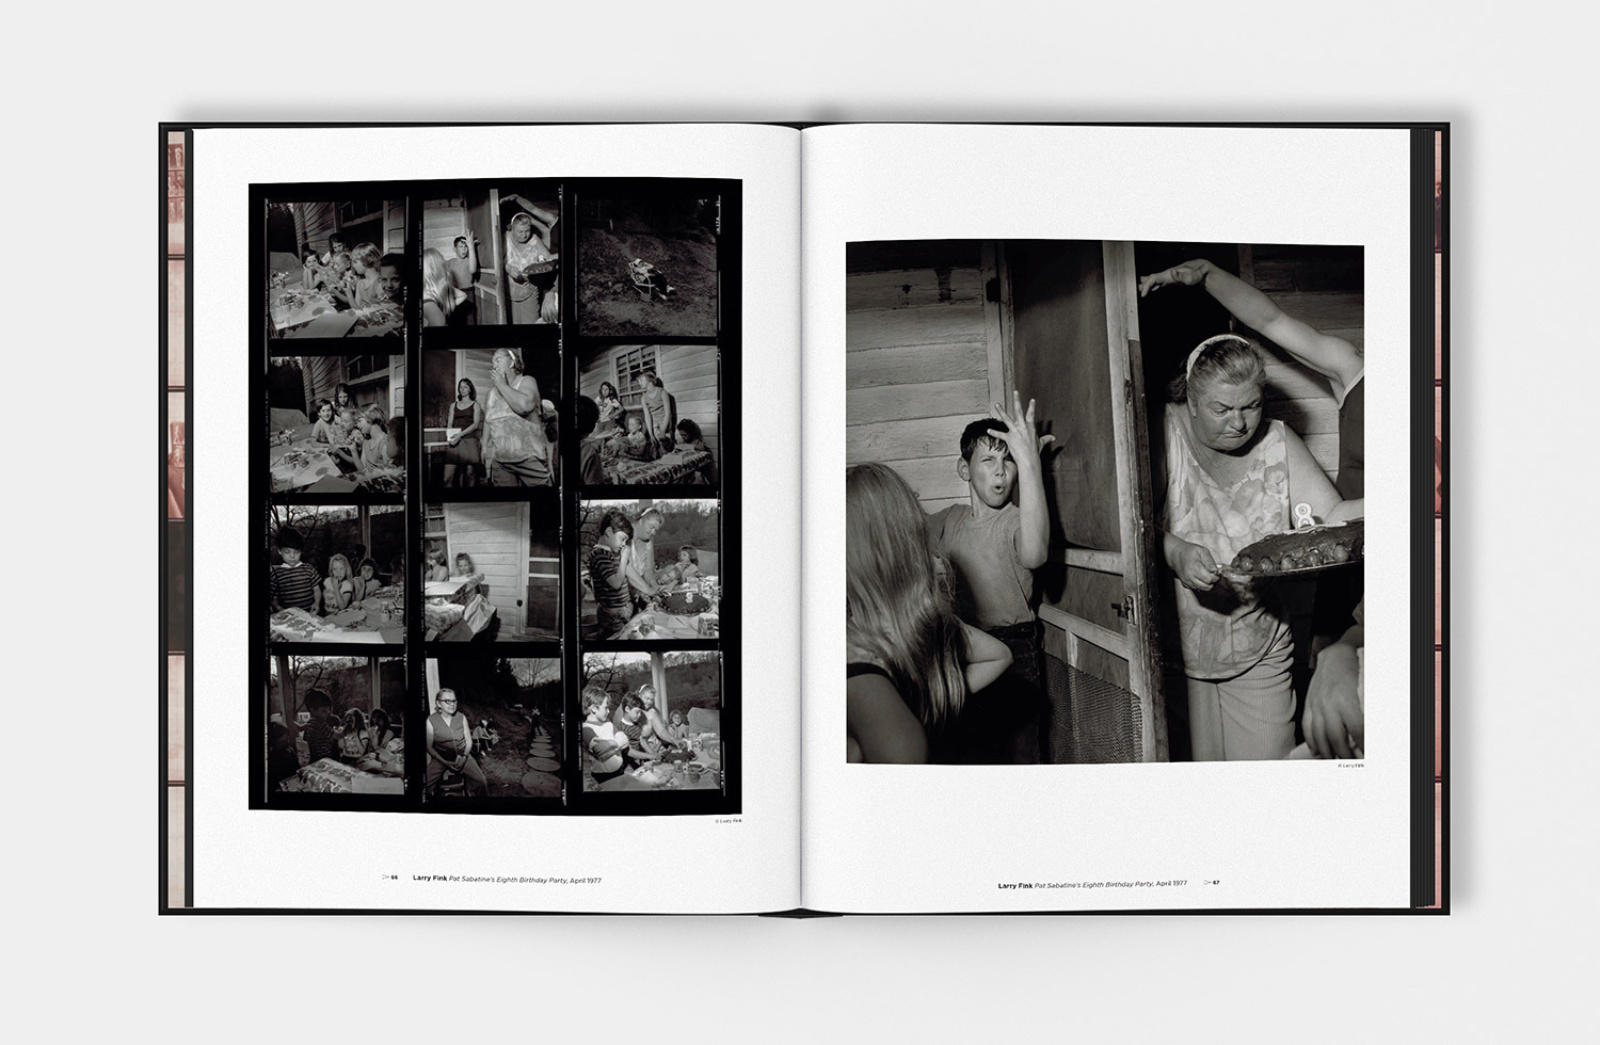 PROOF book design spread, showing a contact sheet and the chosen frame, photographed by Larry Fink